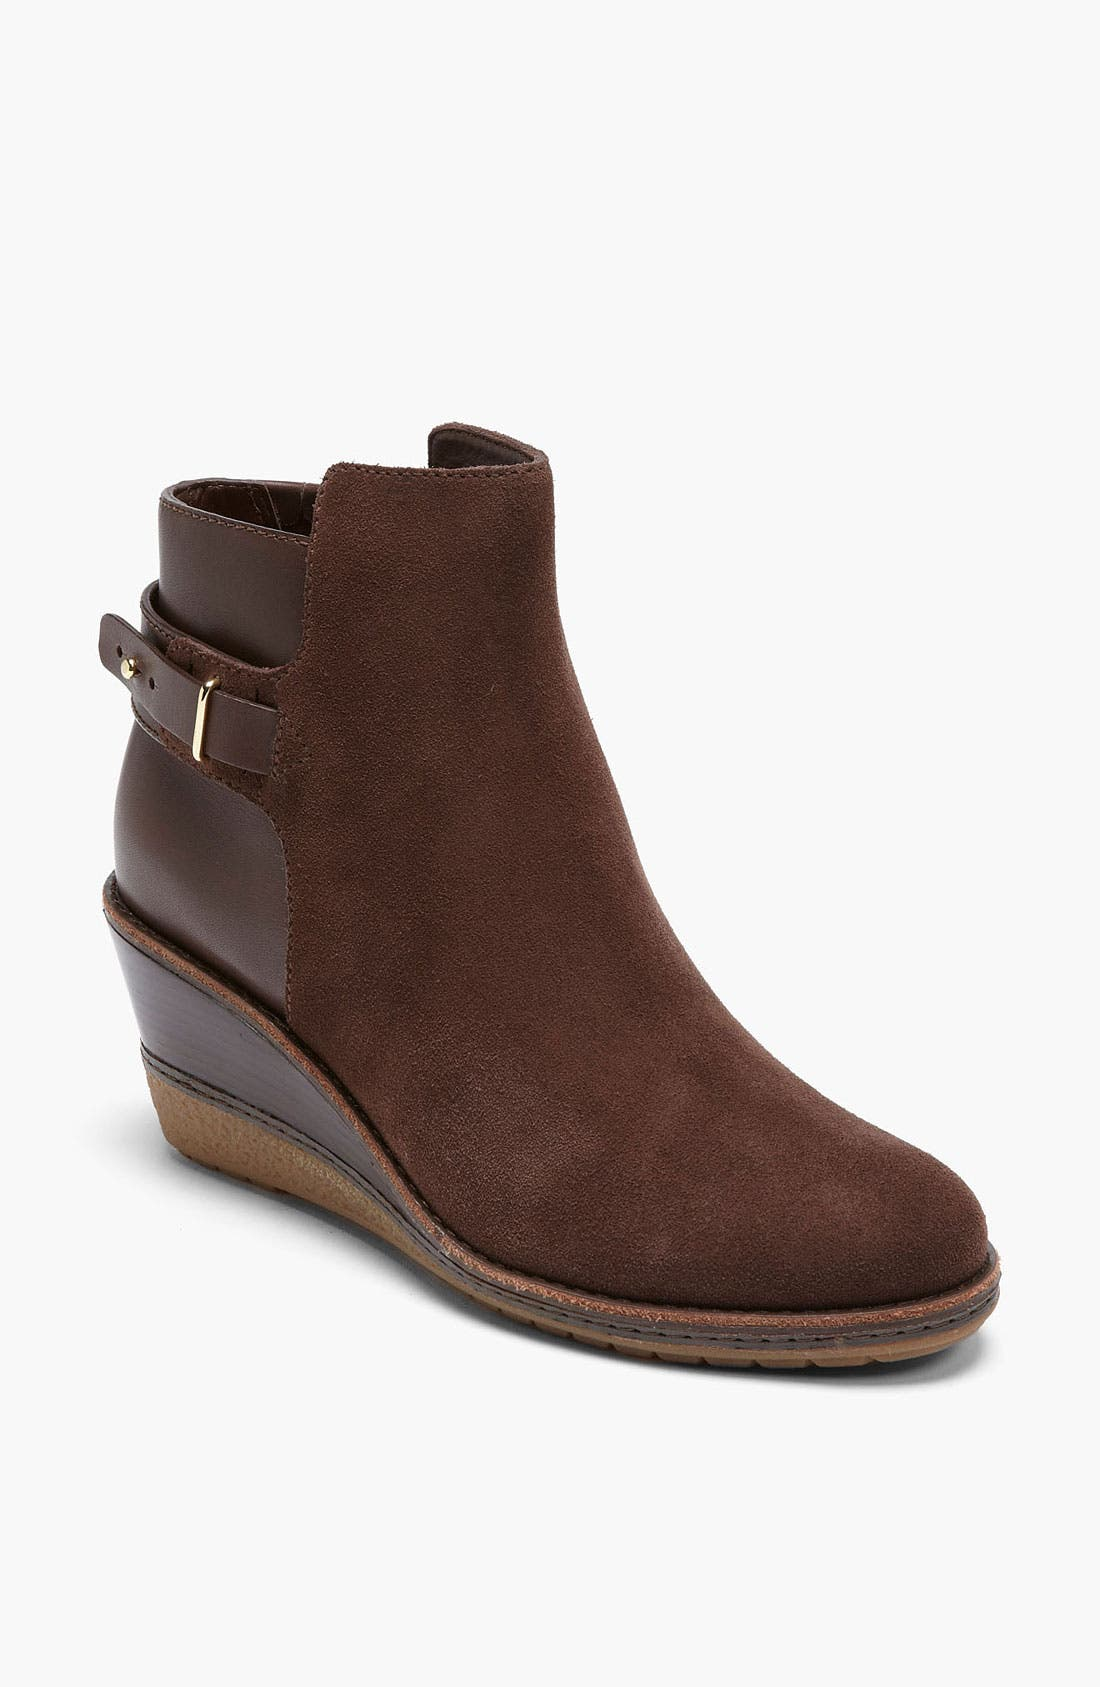 Alternate Image 1 Selected - Cole Haan 'Rayna' Waterpoof Ankle Boot